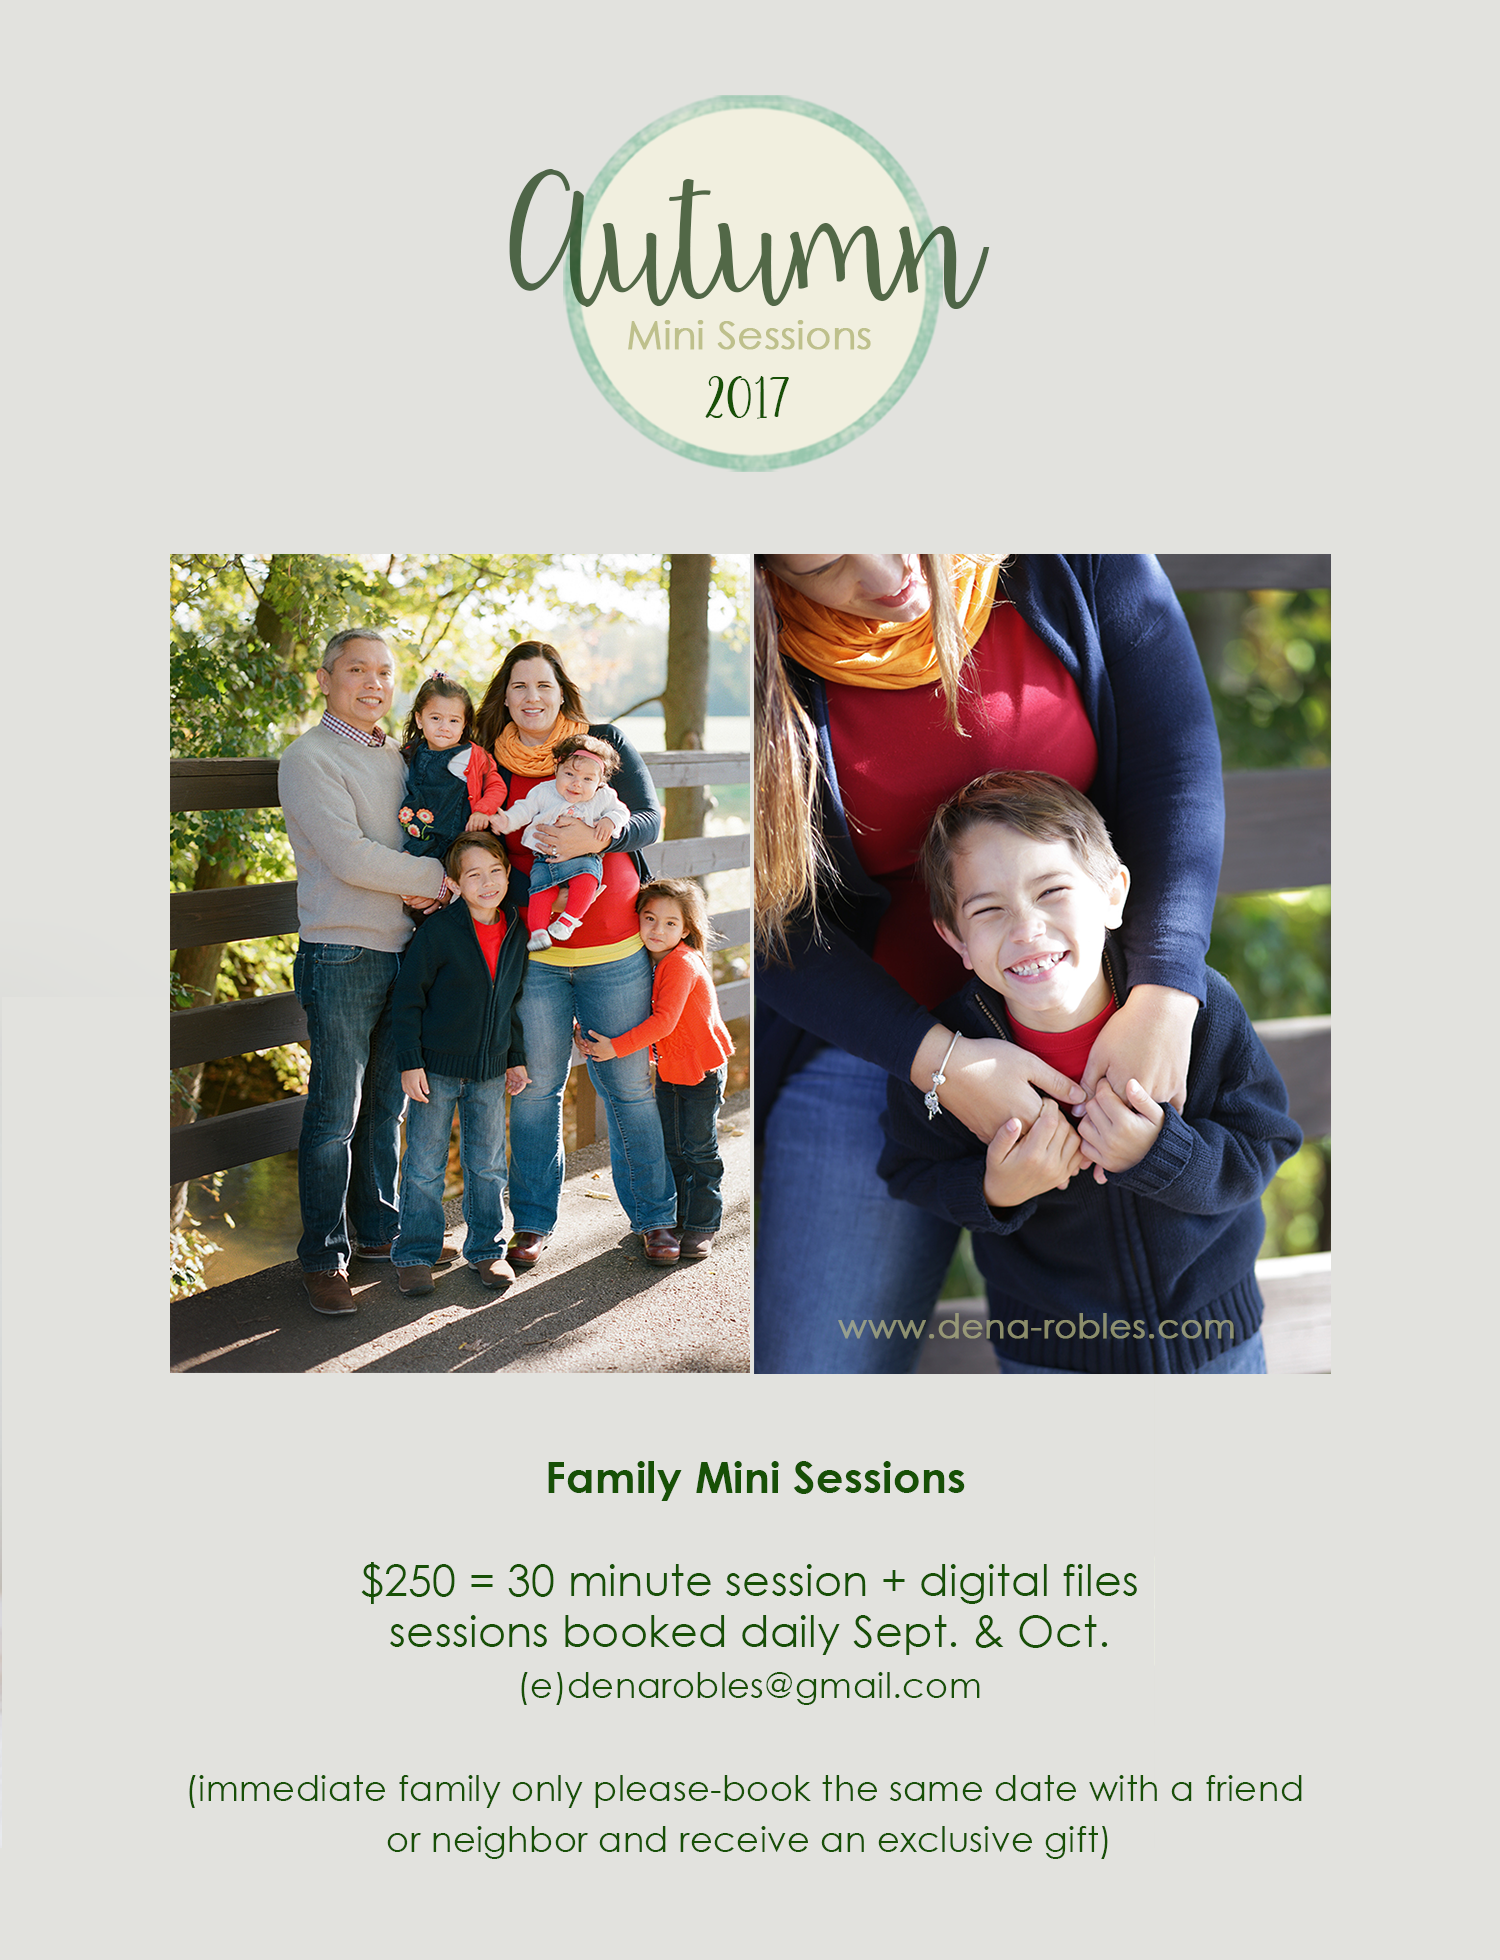 Grand Rapids family mini sessions